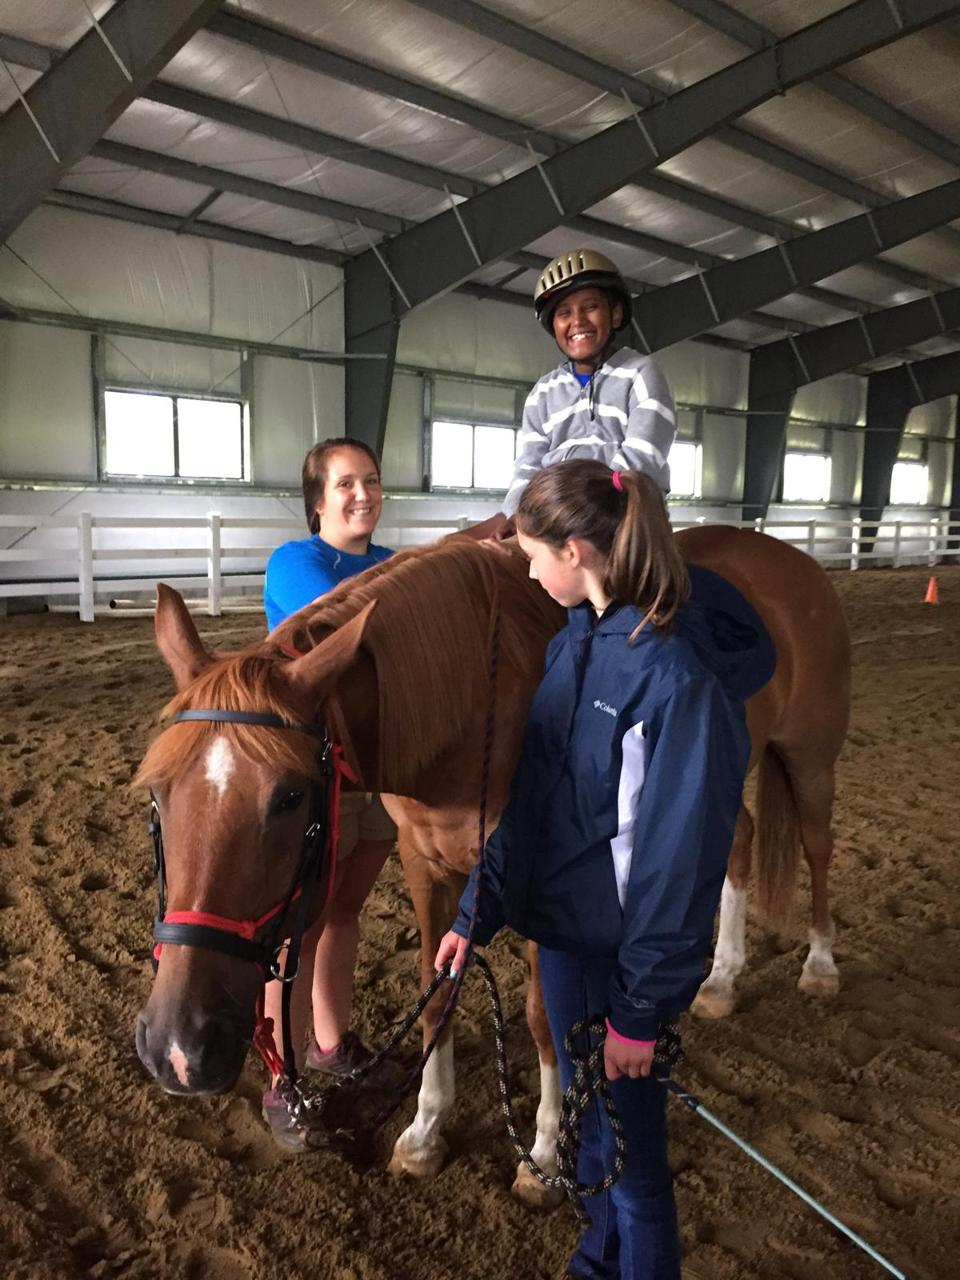 An adaptive horseback riding program at Smugglers' Notch in Vermont.